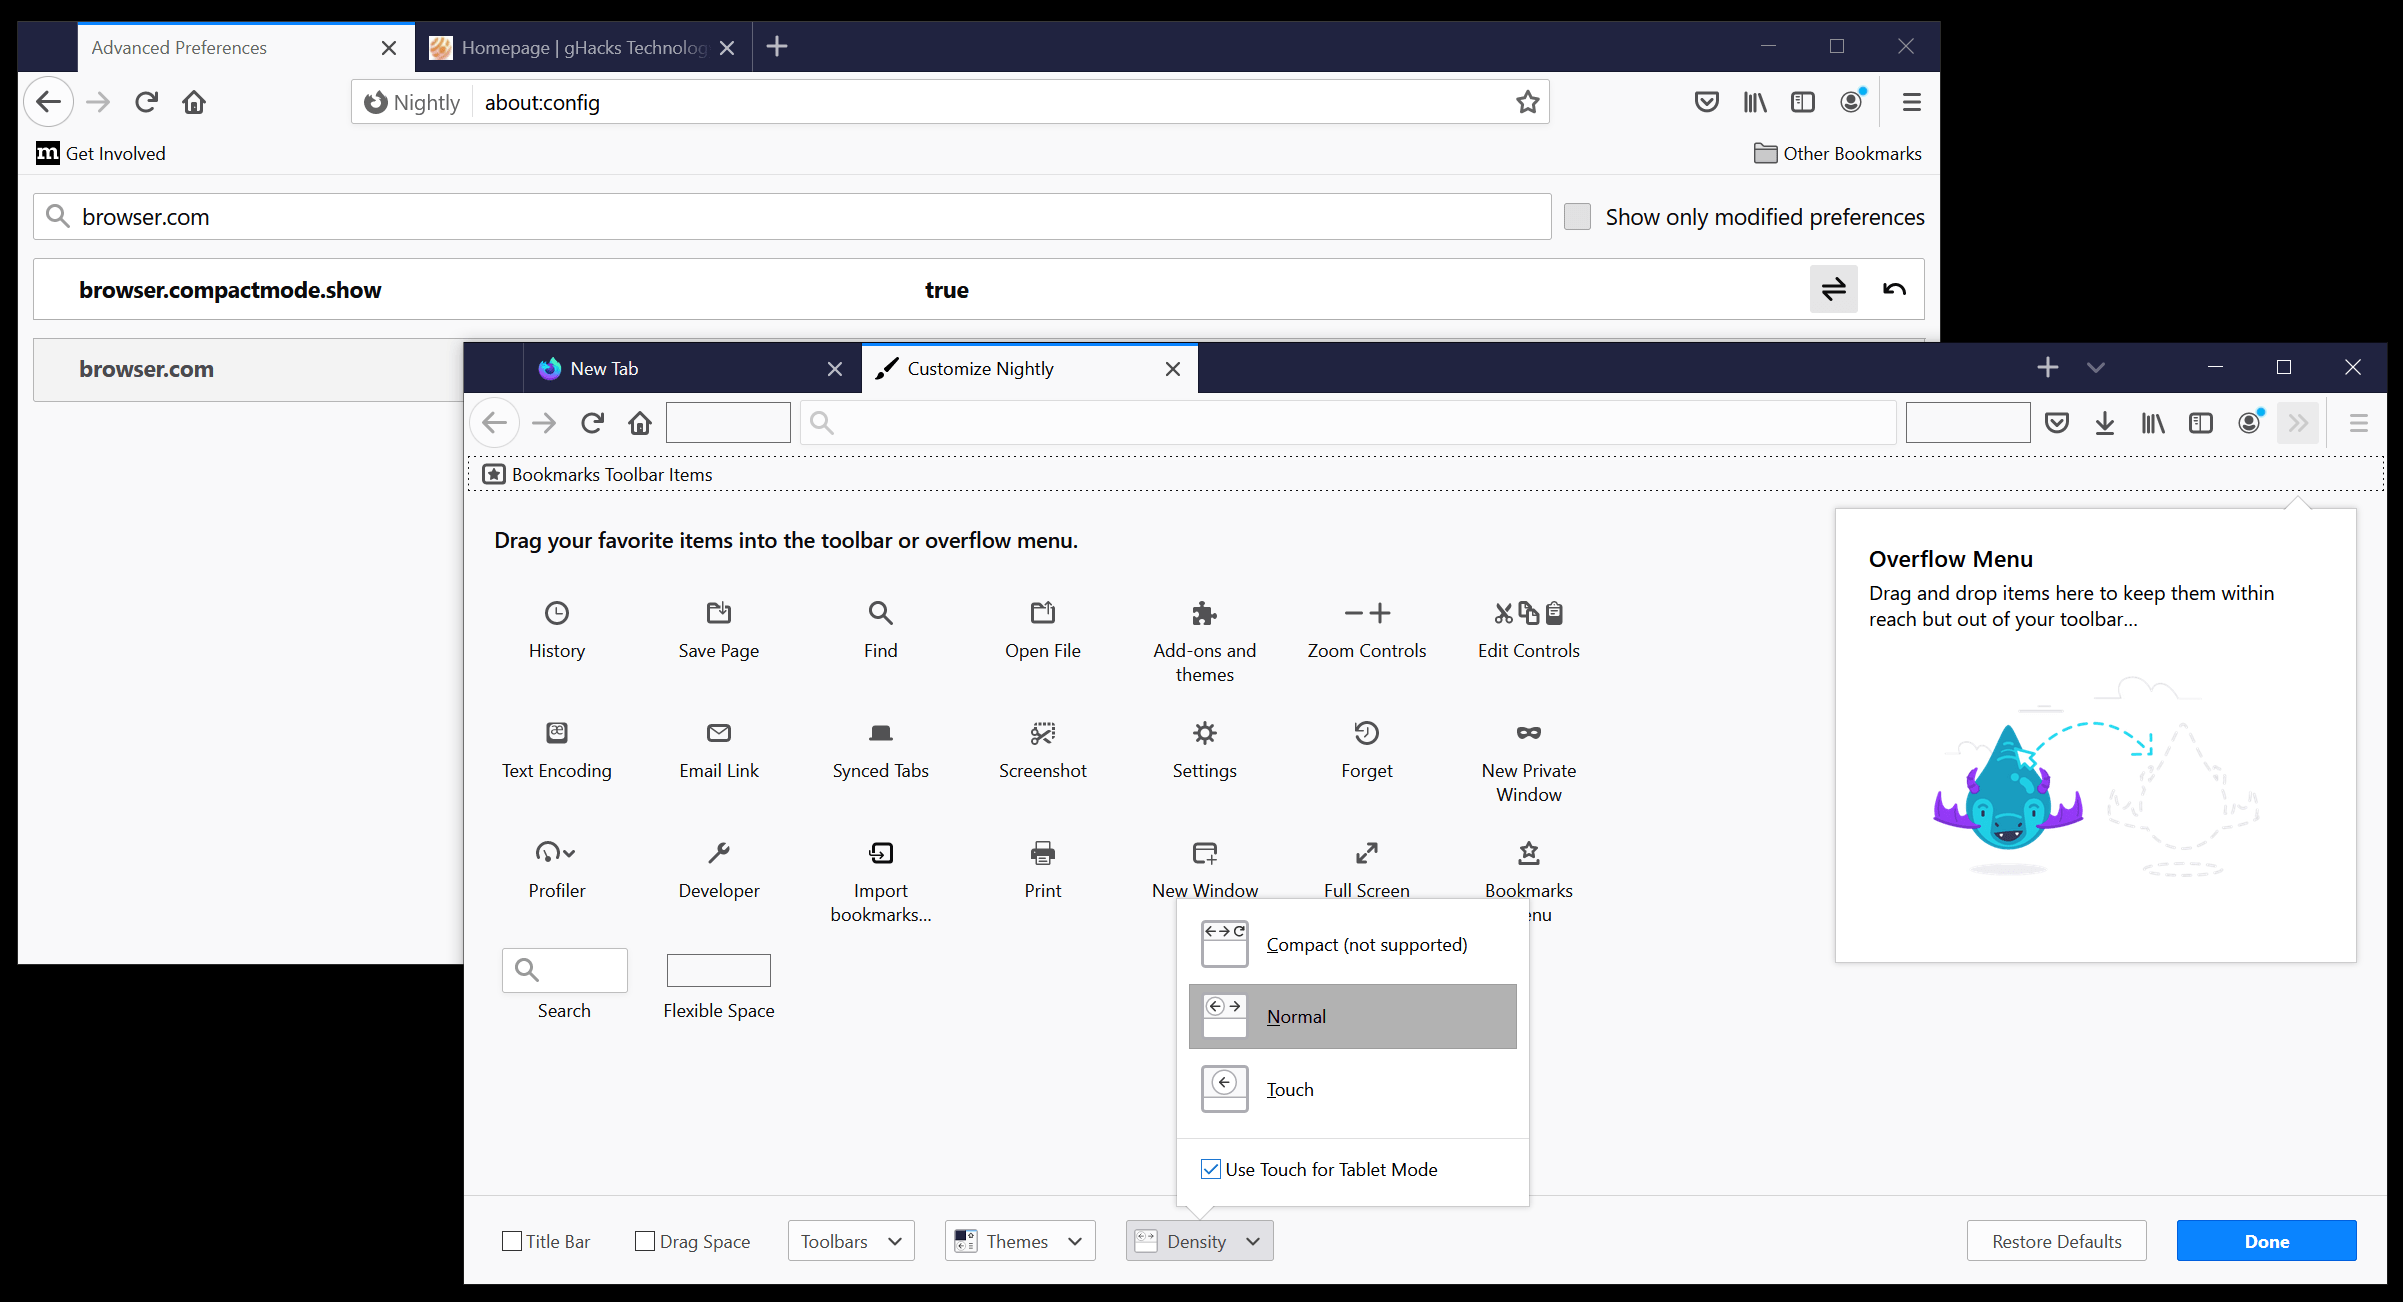 firefox browser-compactmode show disabled